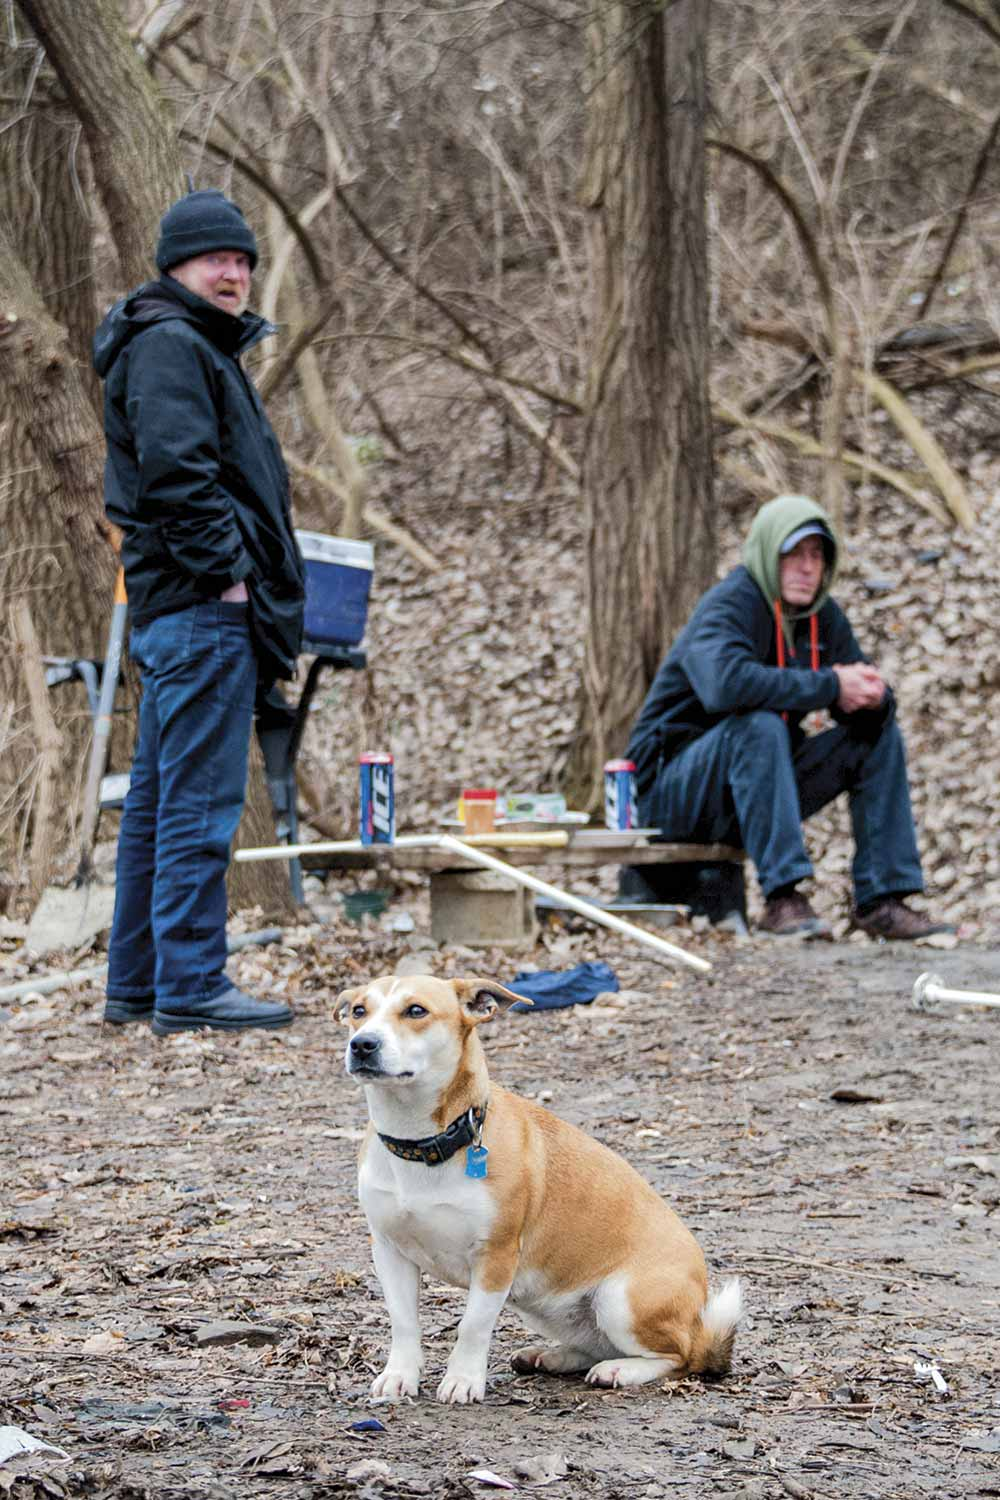 It is not unusual for homeless residents to own pets, NPD Lt. Kevin Drohan said. This becomes an additional concern for those who want to seek housing on cold nights in shelters where animals are not welcome. (Photo by Jim Robertson)